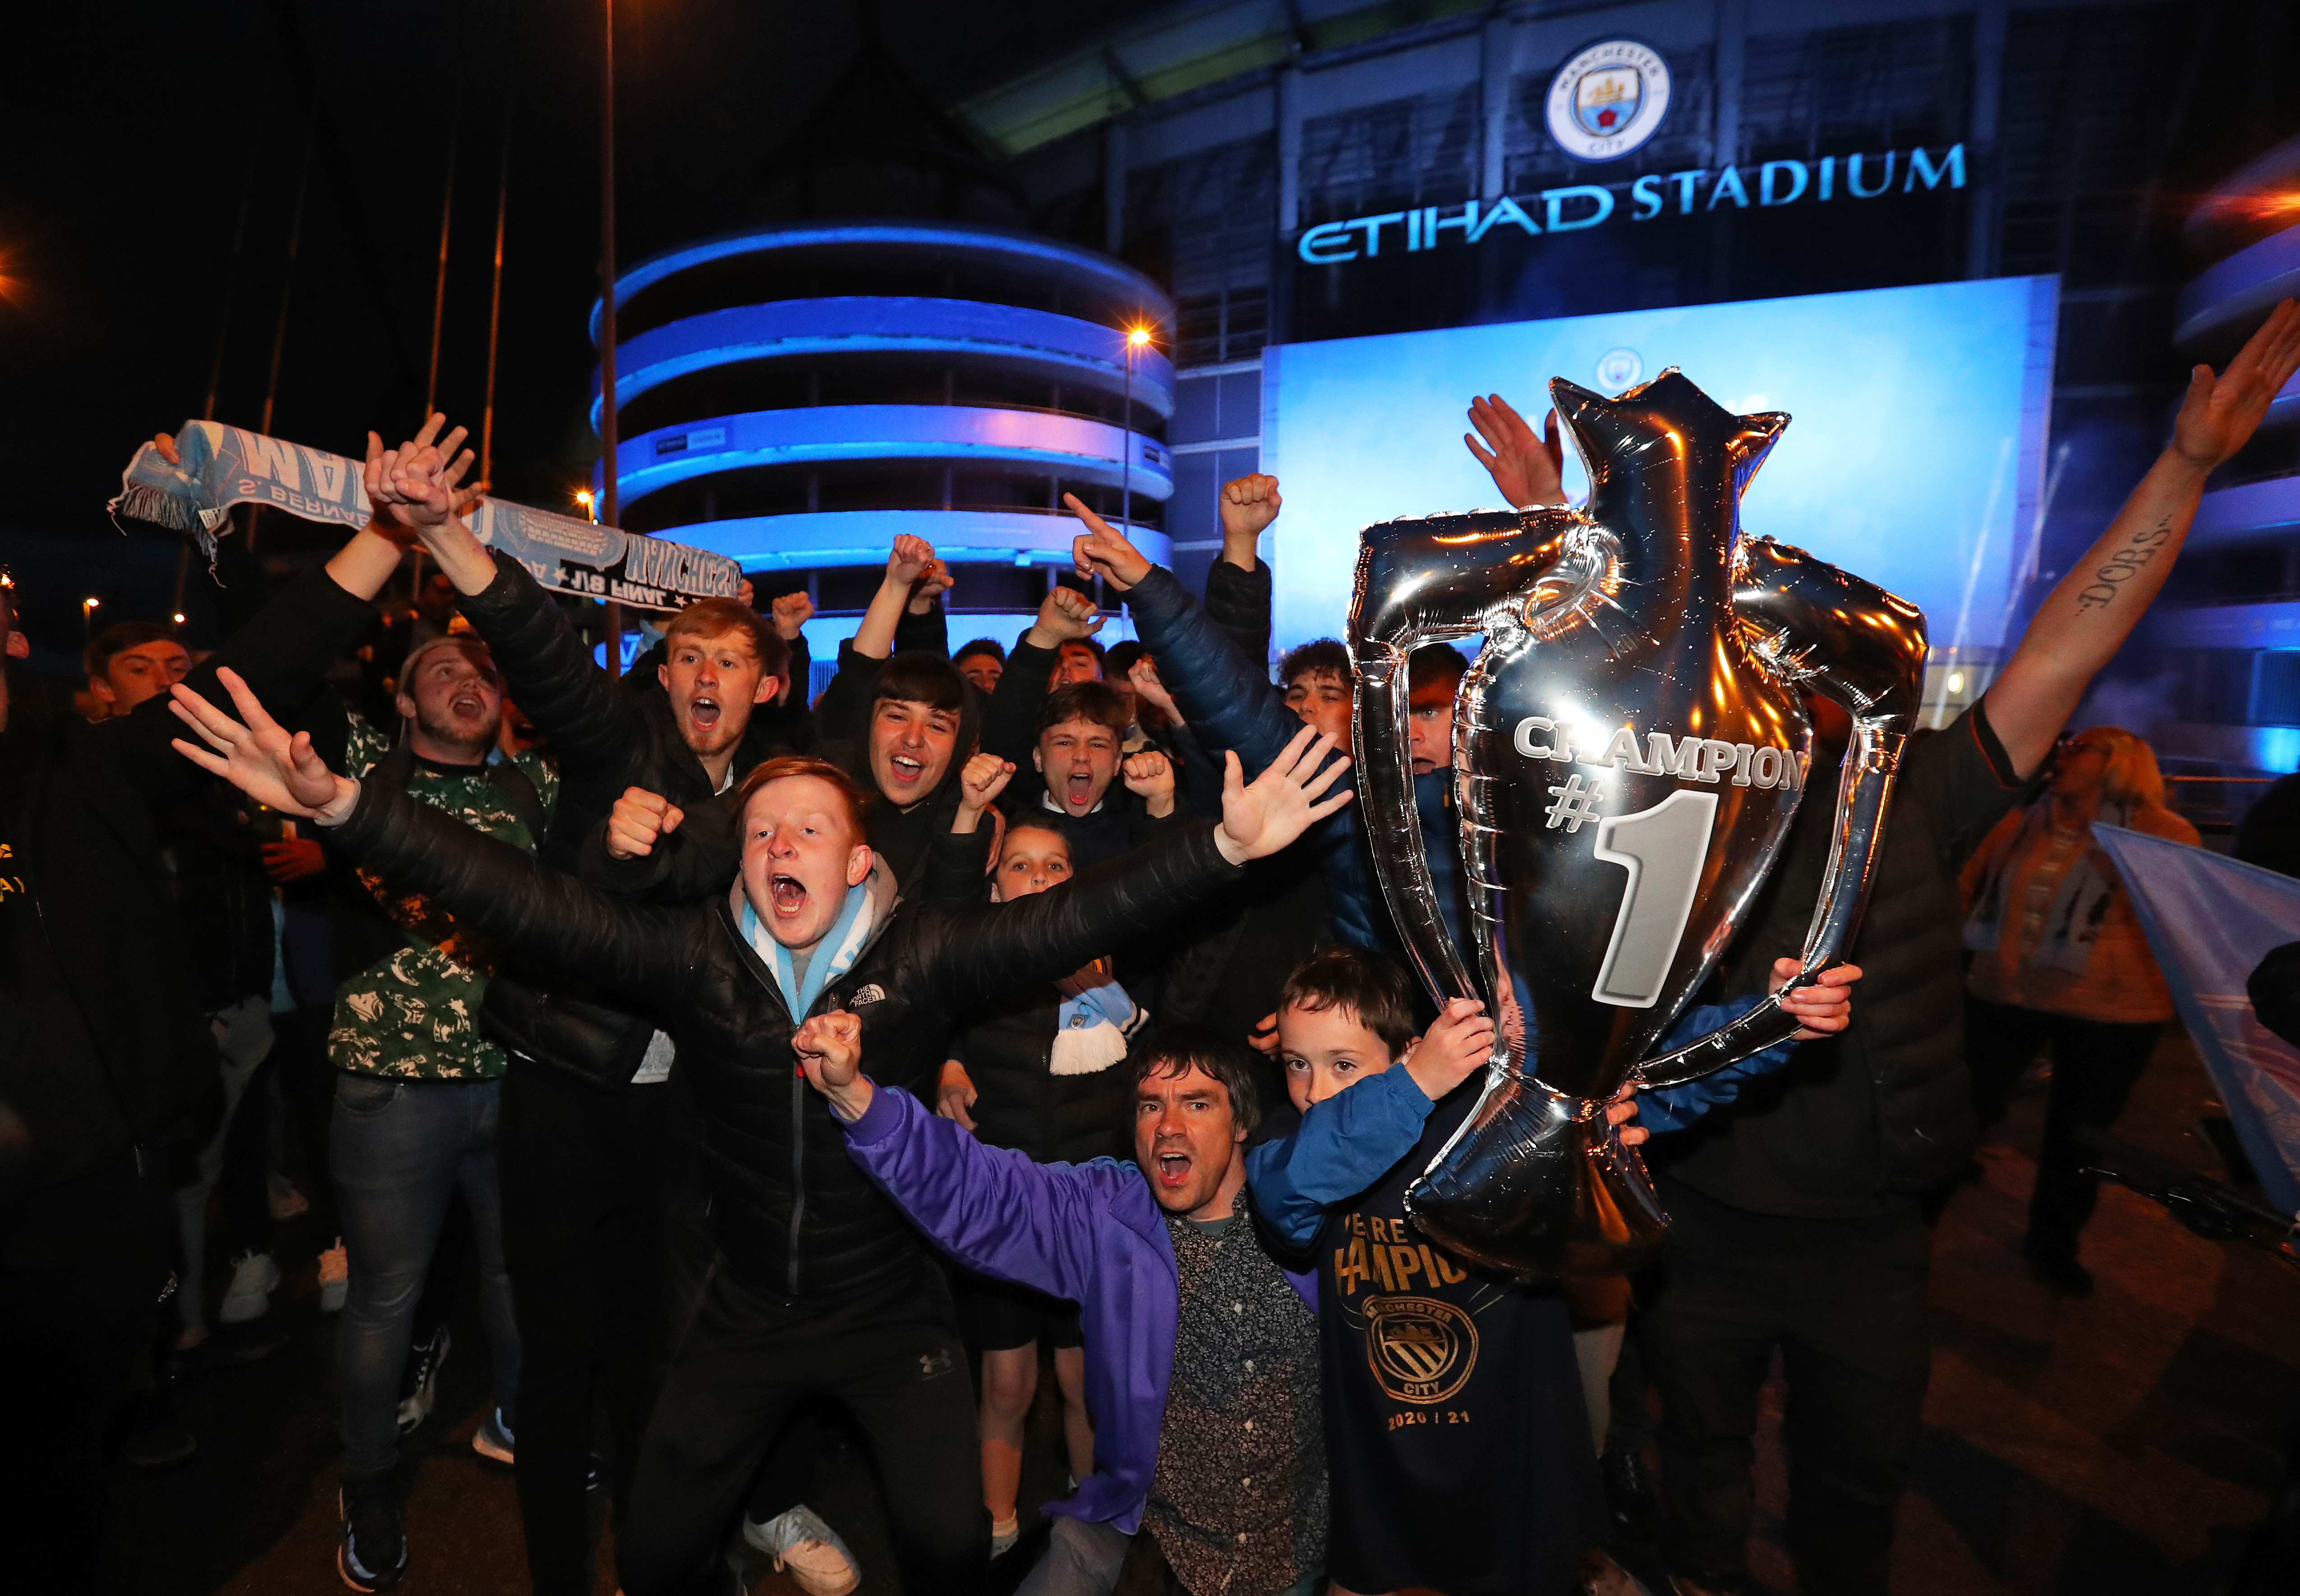 Manchester City Fans Celebrate Winning the Premier League Title - Manchester City - Premier League